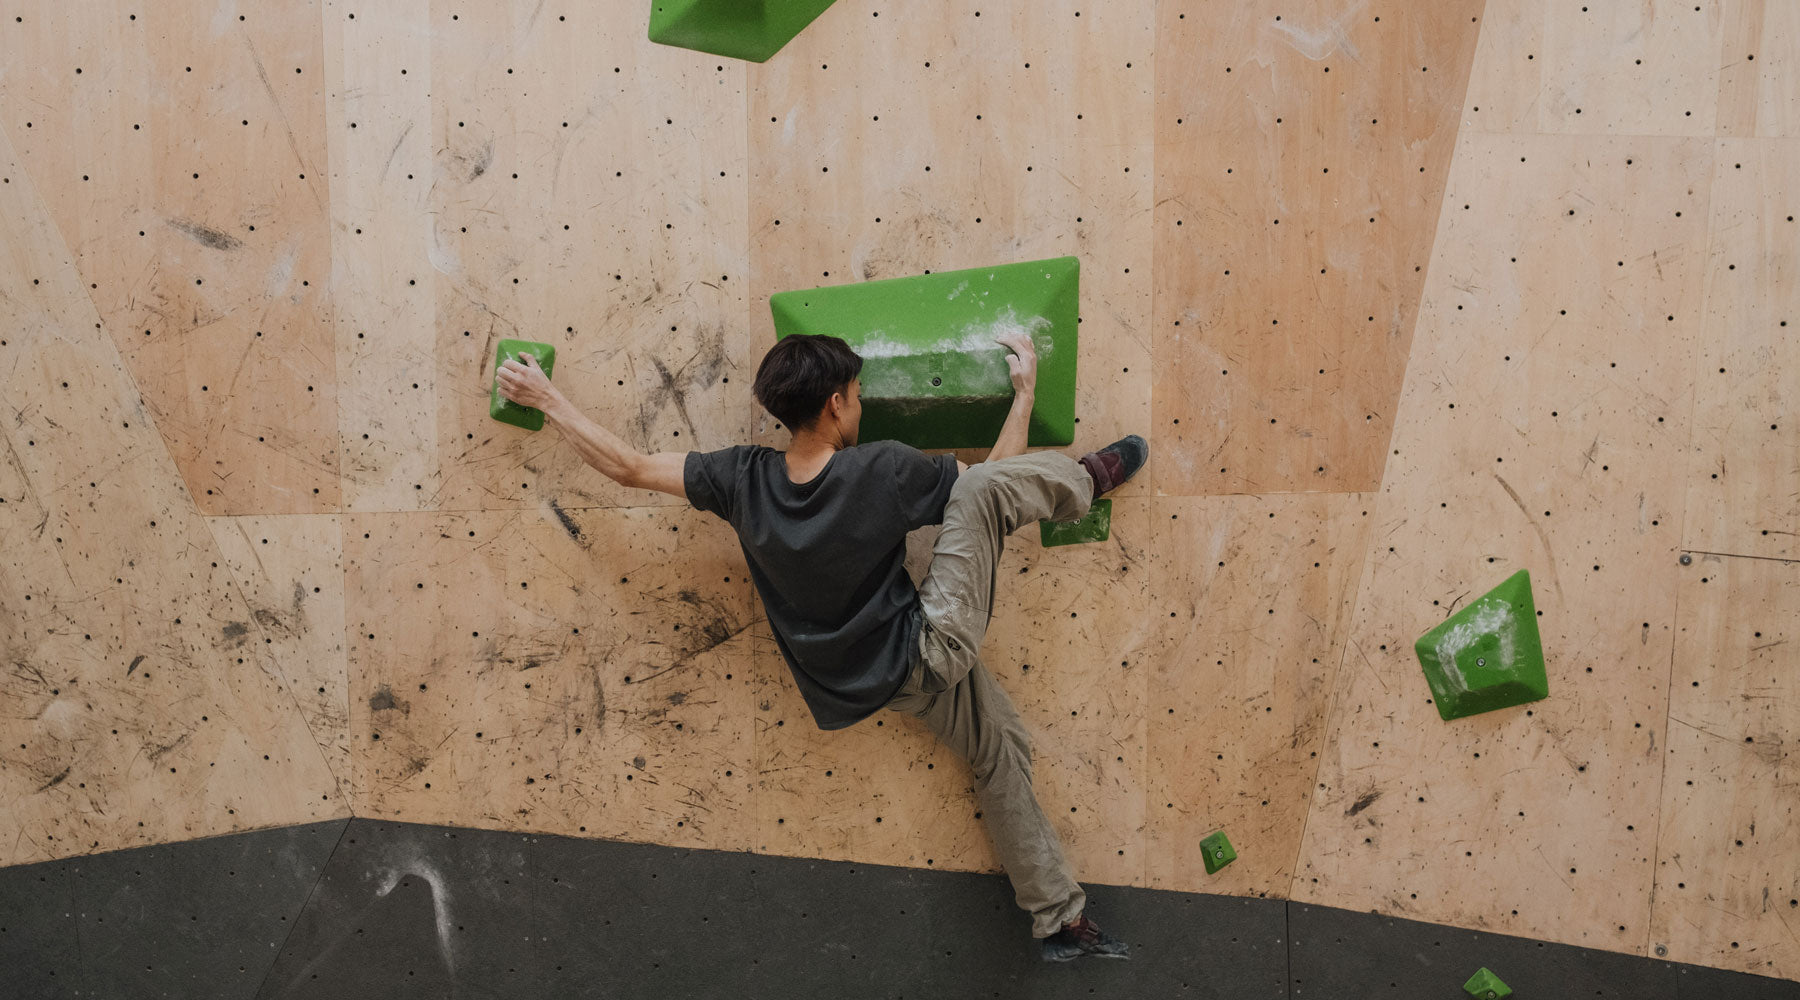 a climber at b pump climbs on the so ill chunks climbing holds